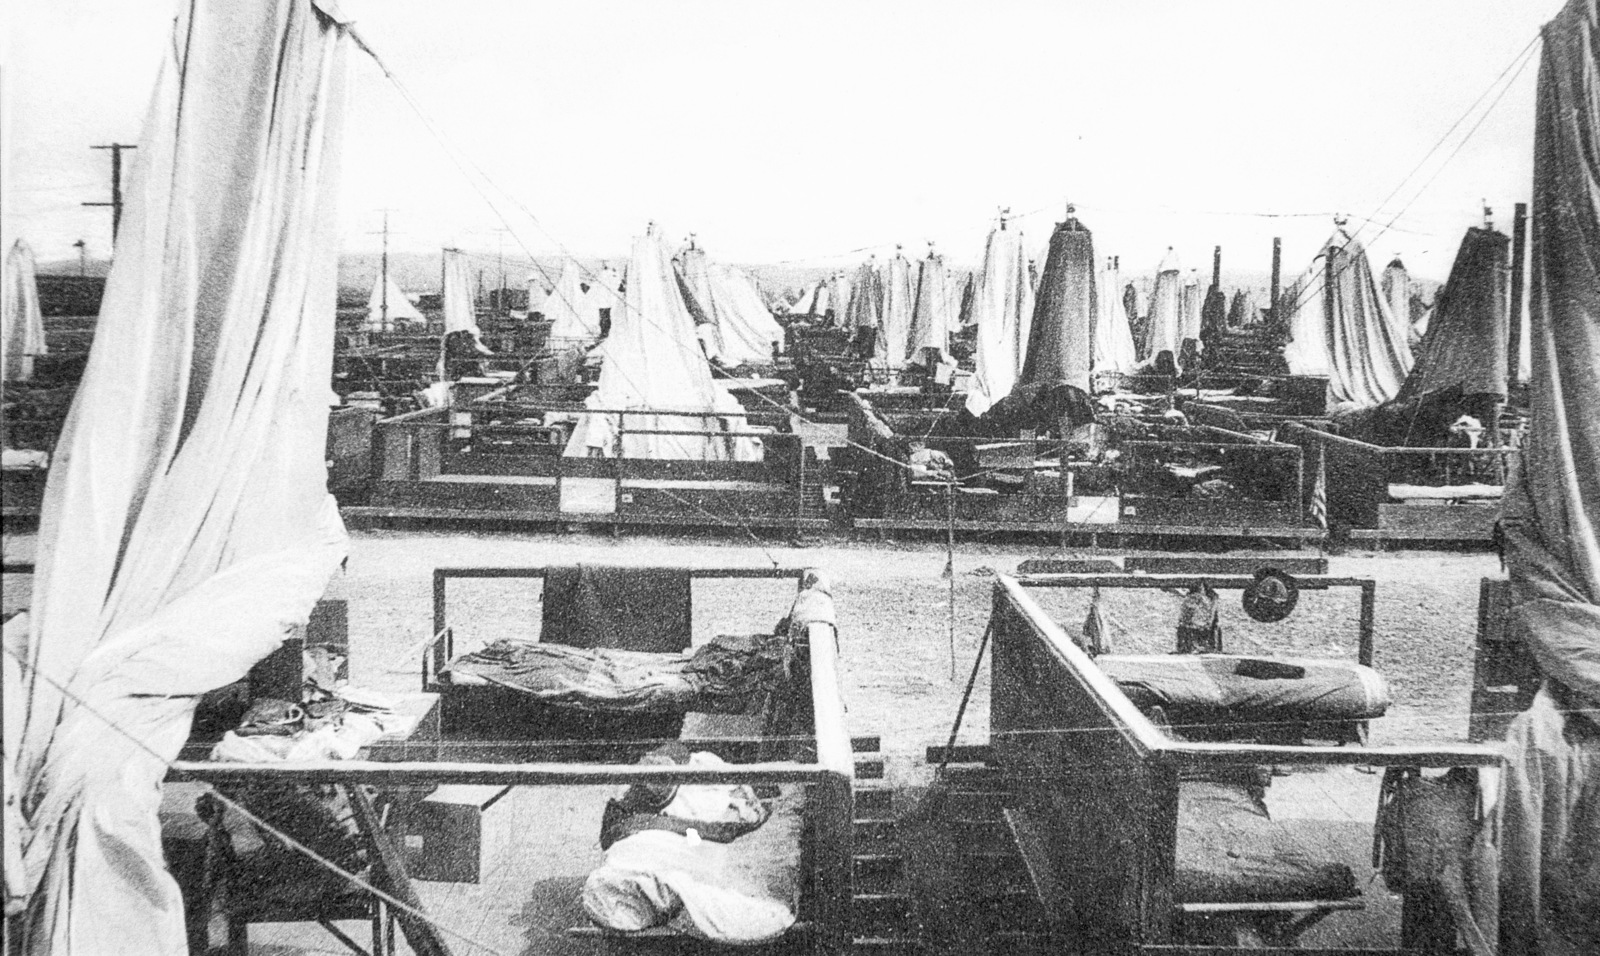 A field of Mushroom Tents, both closed and open, at Camp Kearny, California (CA). Note: In the future this area became the US Navy (USN) Naval Air Station Miramar. (Exact Date Shot Unknown)